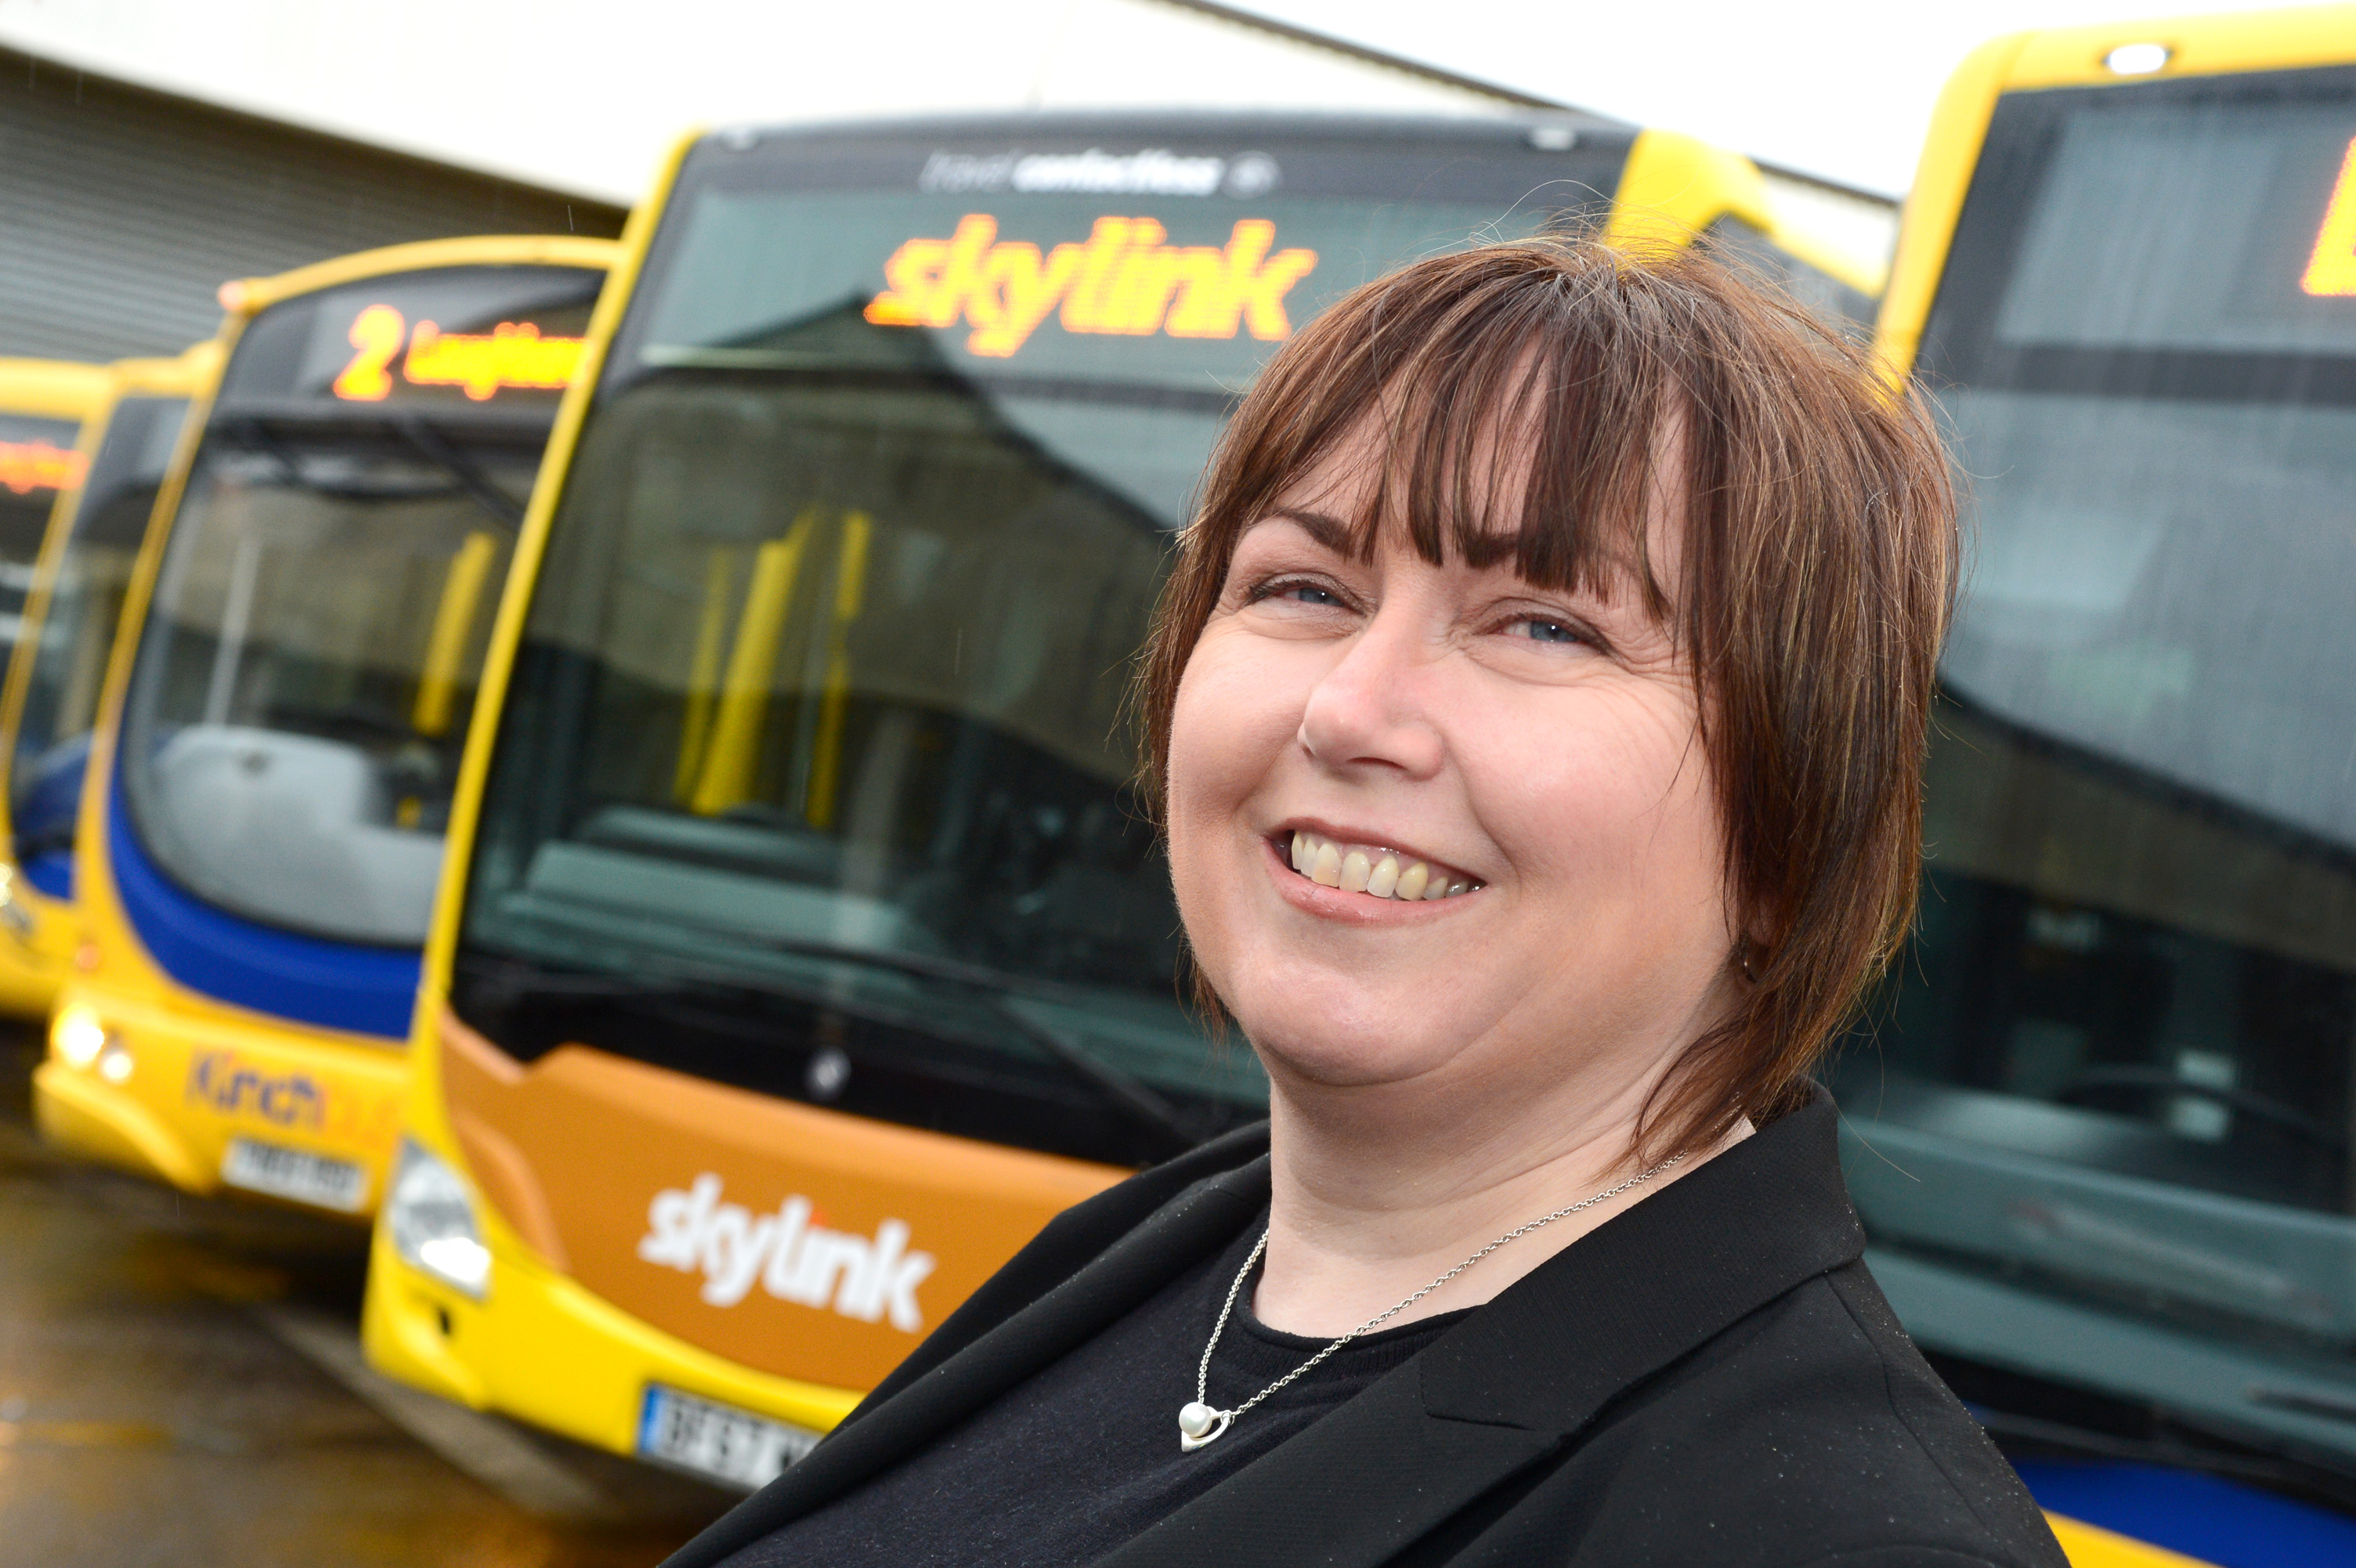 Sue's the new driving force at Kinchbus